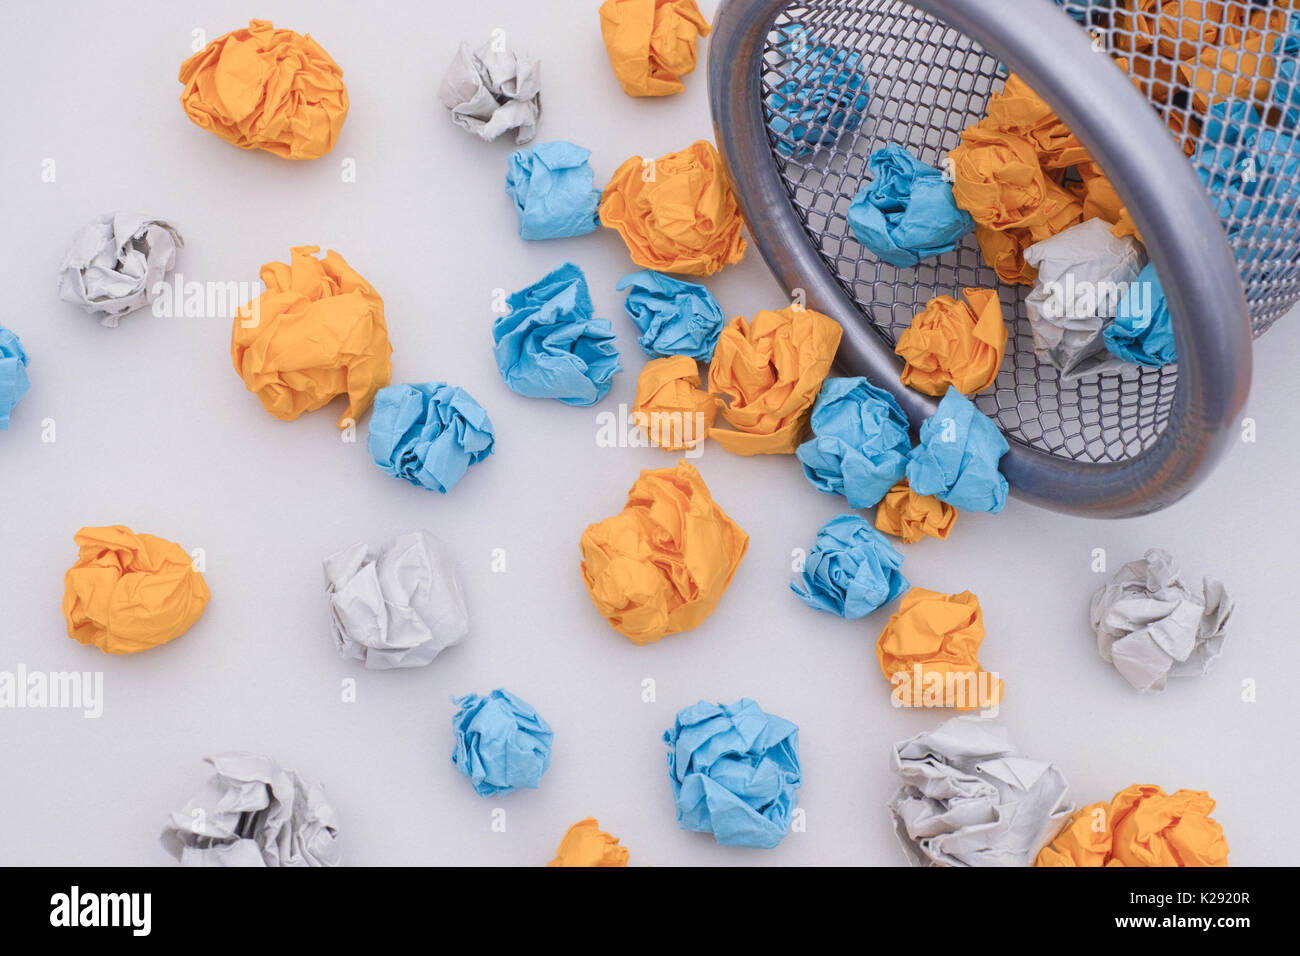 Colorful crumpled paper balls rolling out of a trash can. Idea Concept. - Stock Image